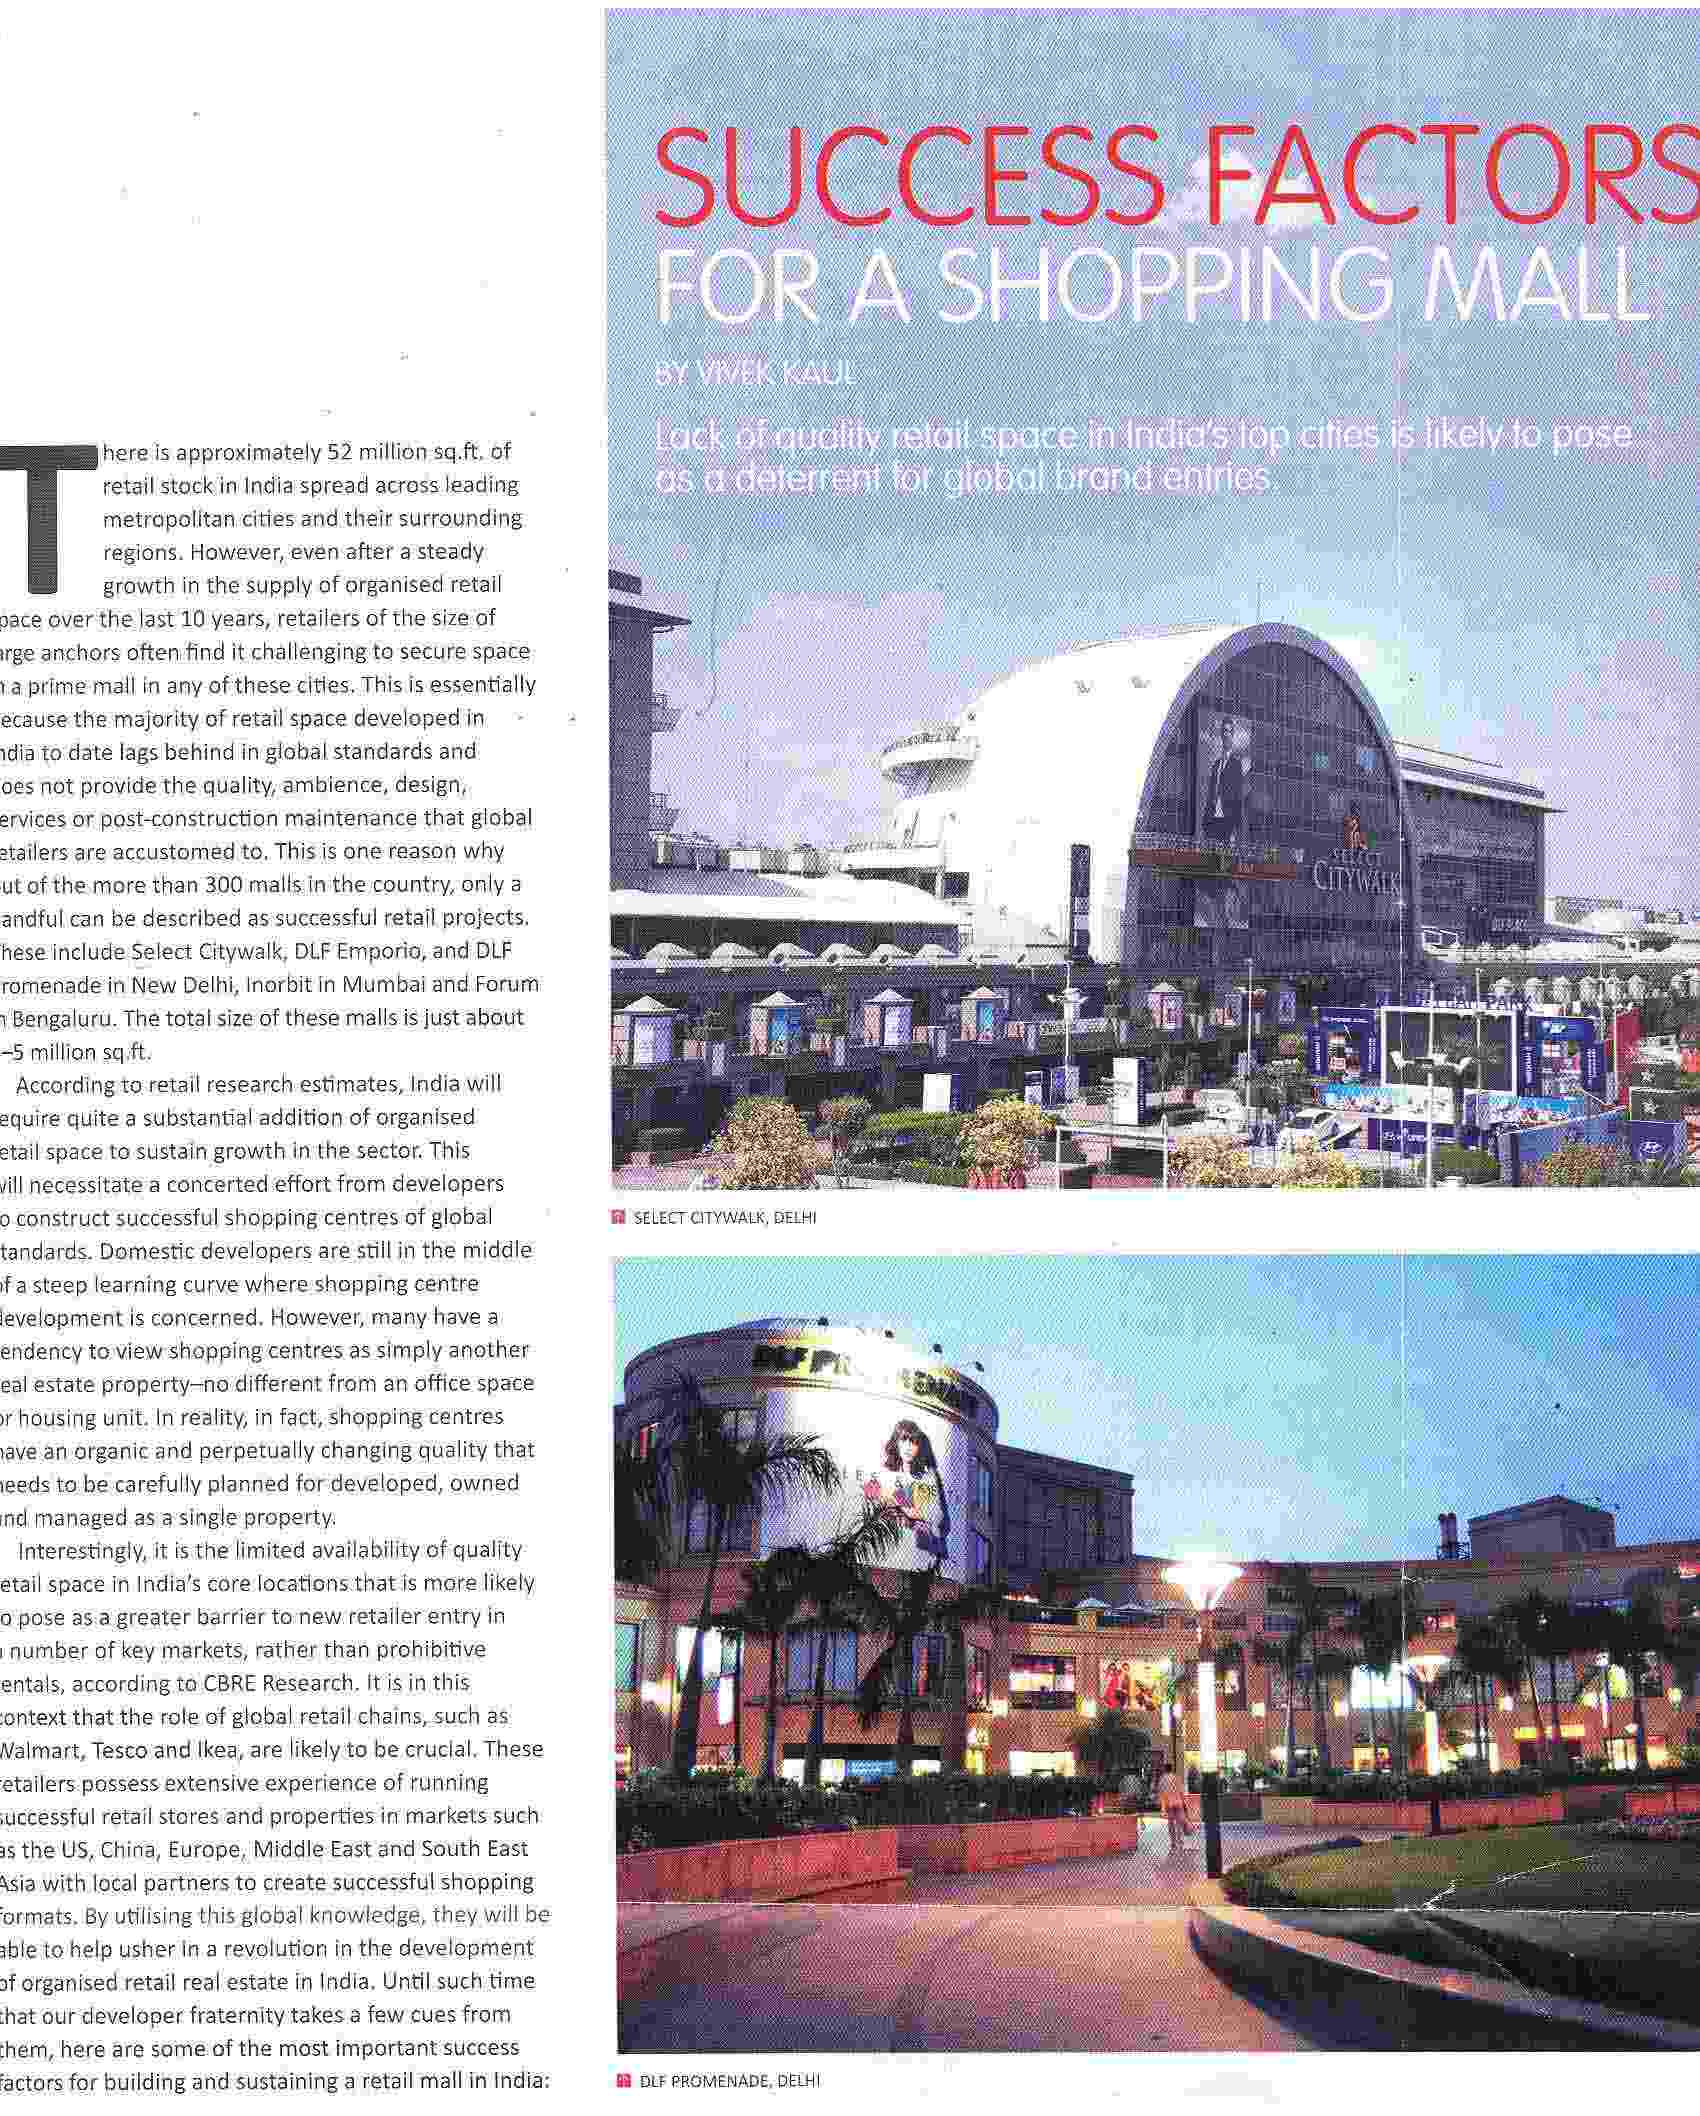 Success factors for a Shopping Mall